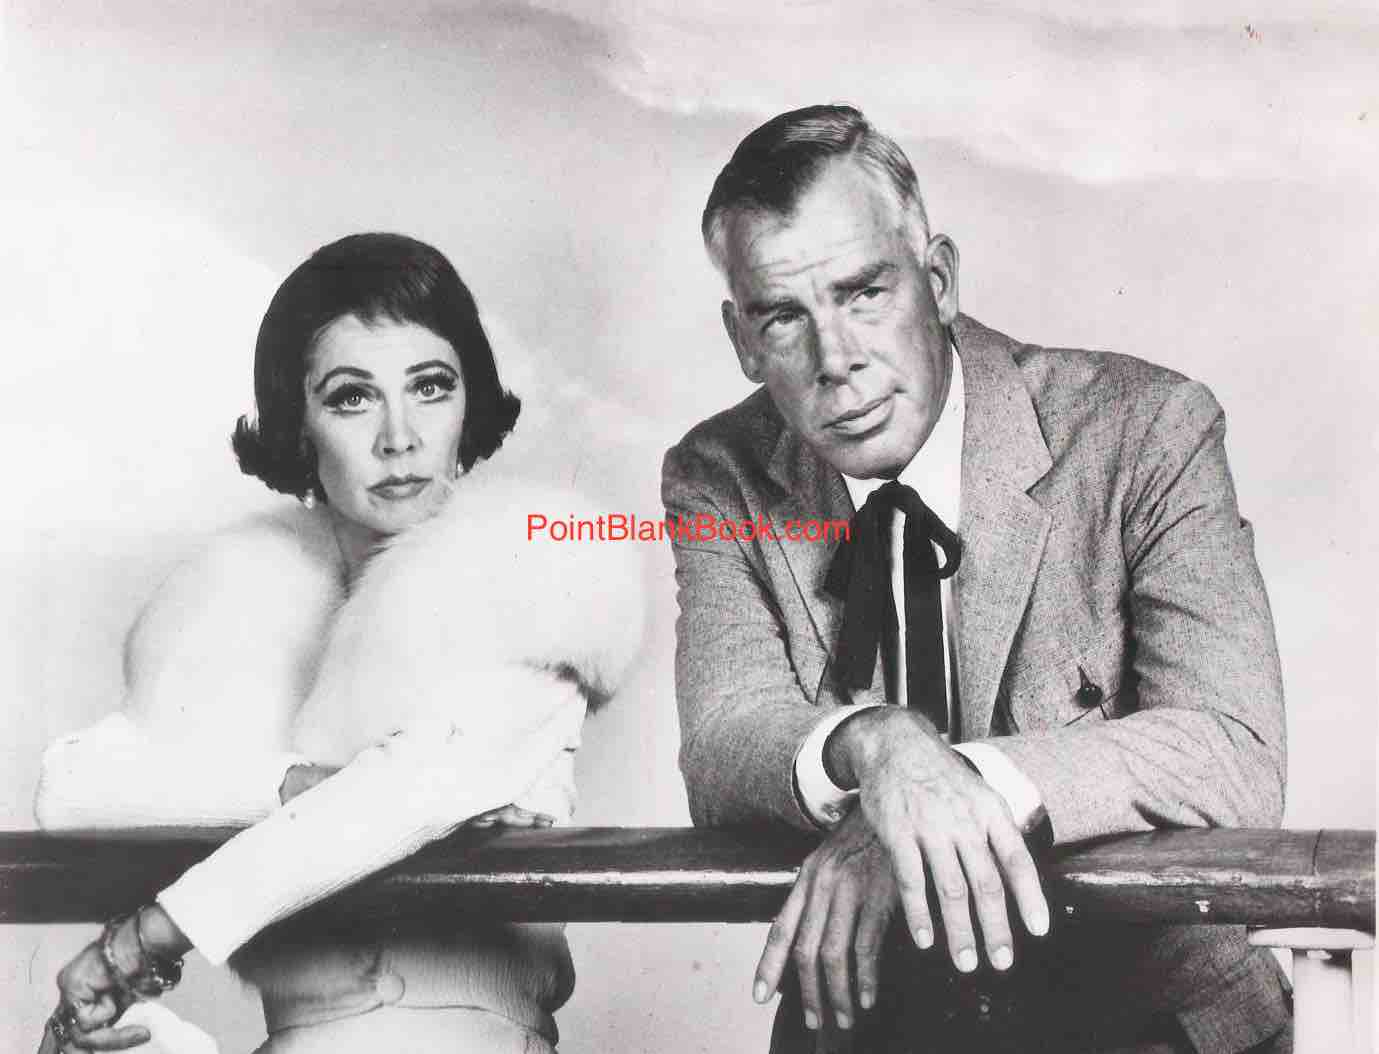 Lee Marvin on the railing with costar Vivien Leigh in what would be her last film.